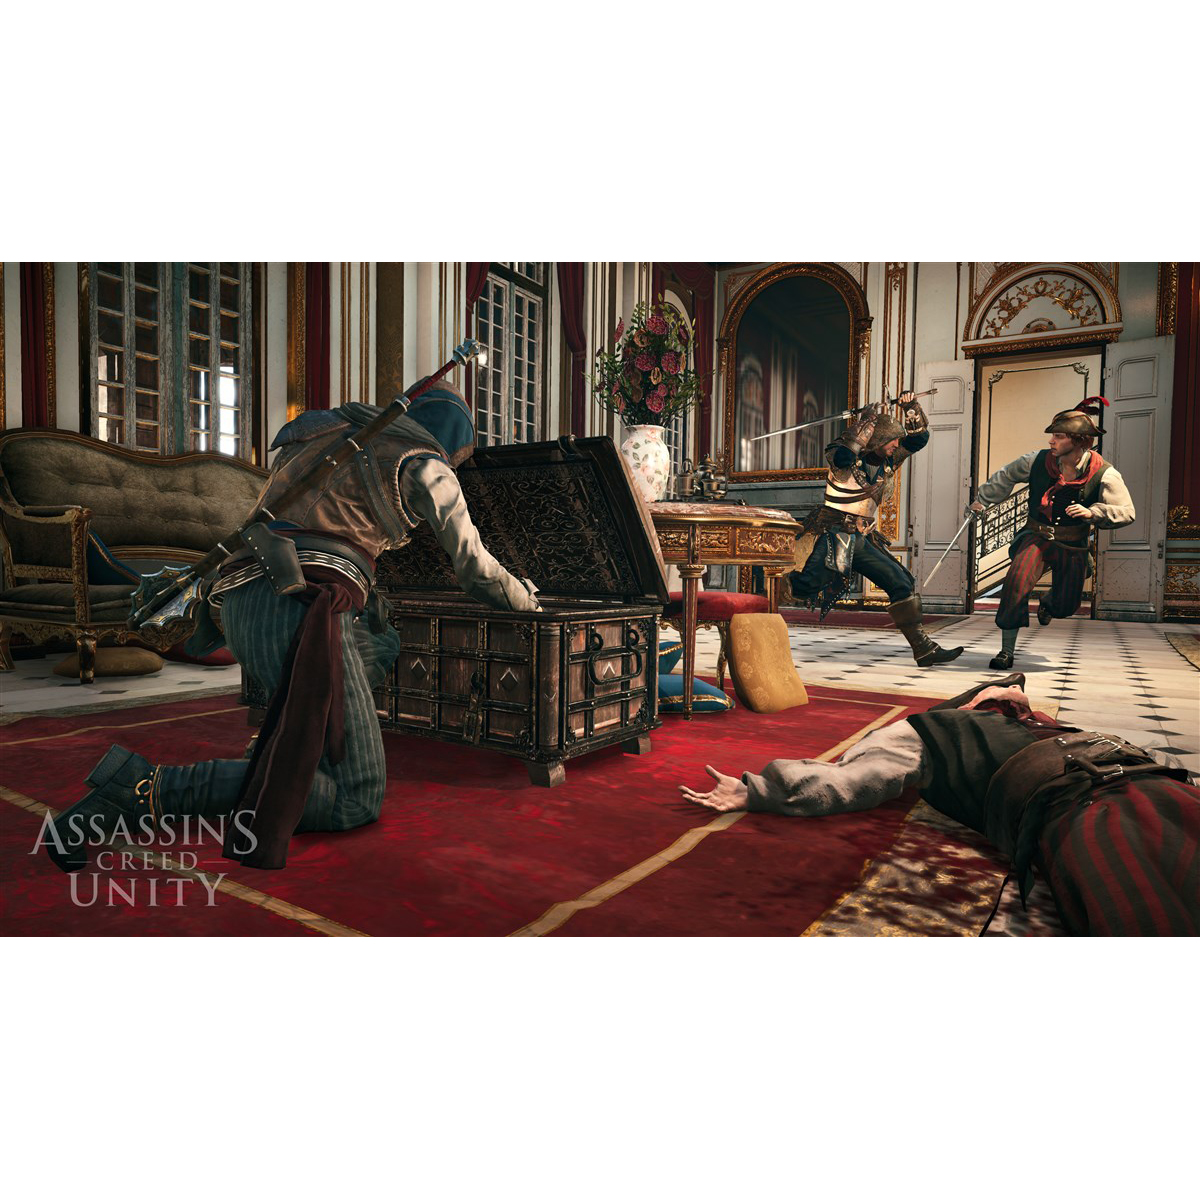 Joc Assassins Creed Unity Greatest Hits pentru Xbox One 3